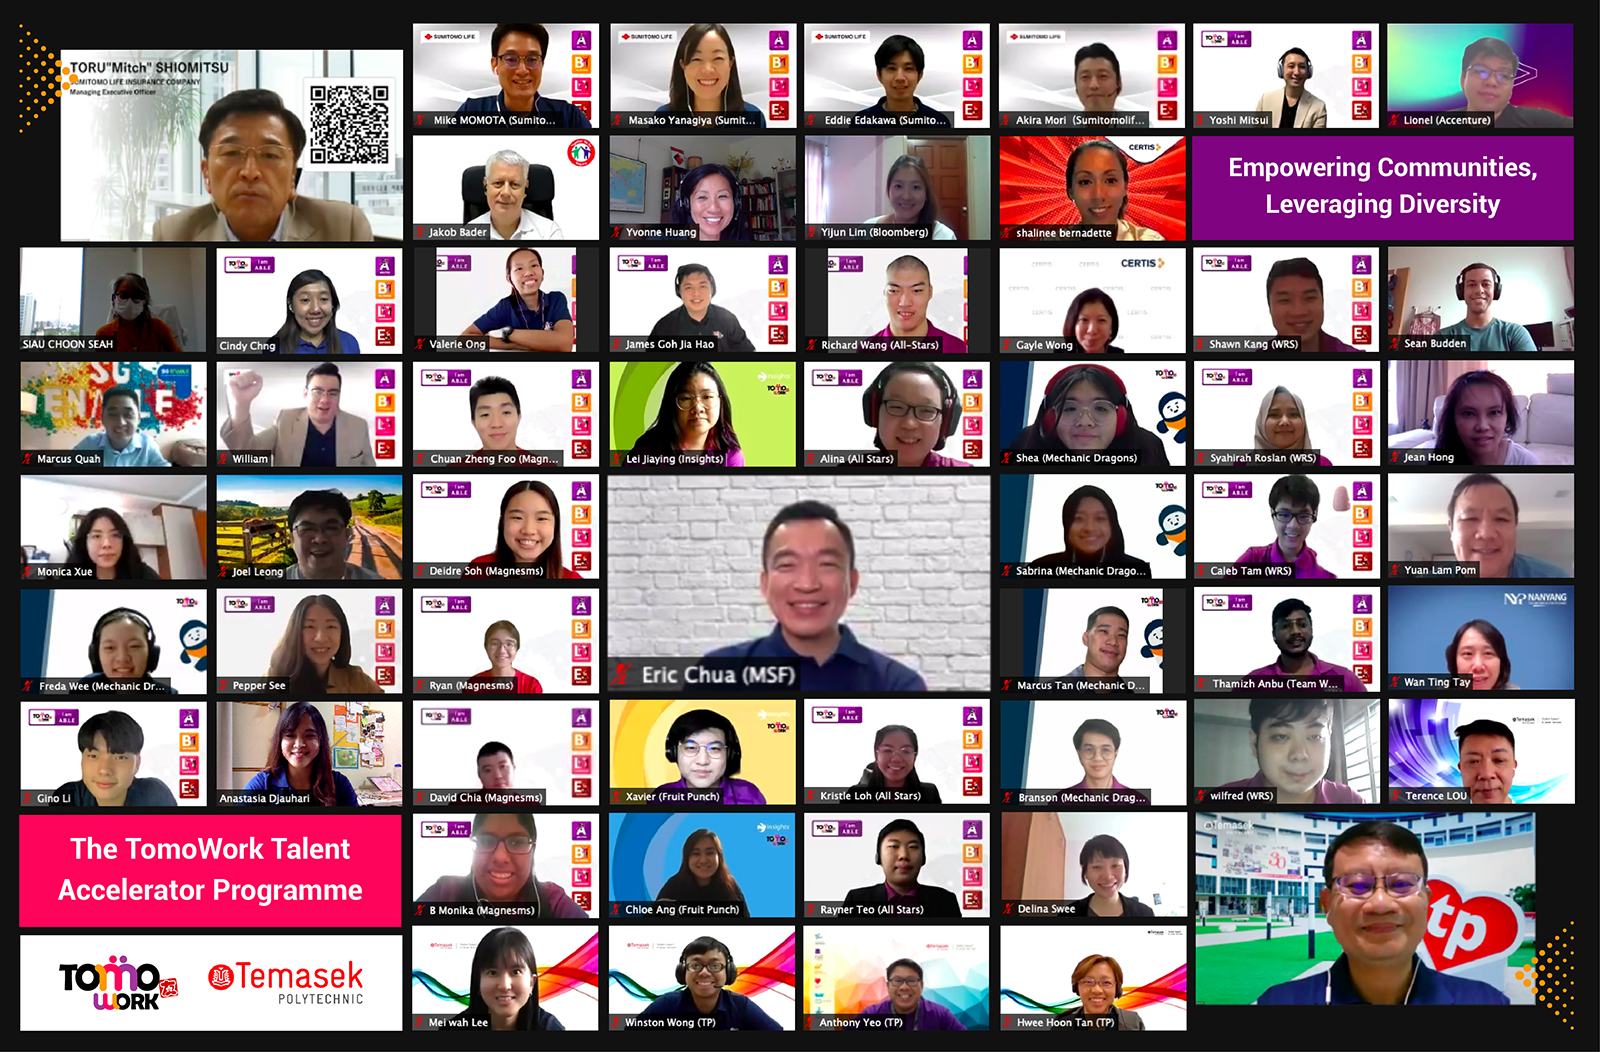 a Zoom screenshot of Mr. Eric Chua, Parliamentary Secretary, Ministry of Culture, Community and Youth & Ministry of Social and Family Development, participants and valued corporate partners at the end of Demo Day